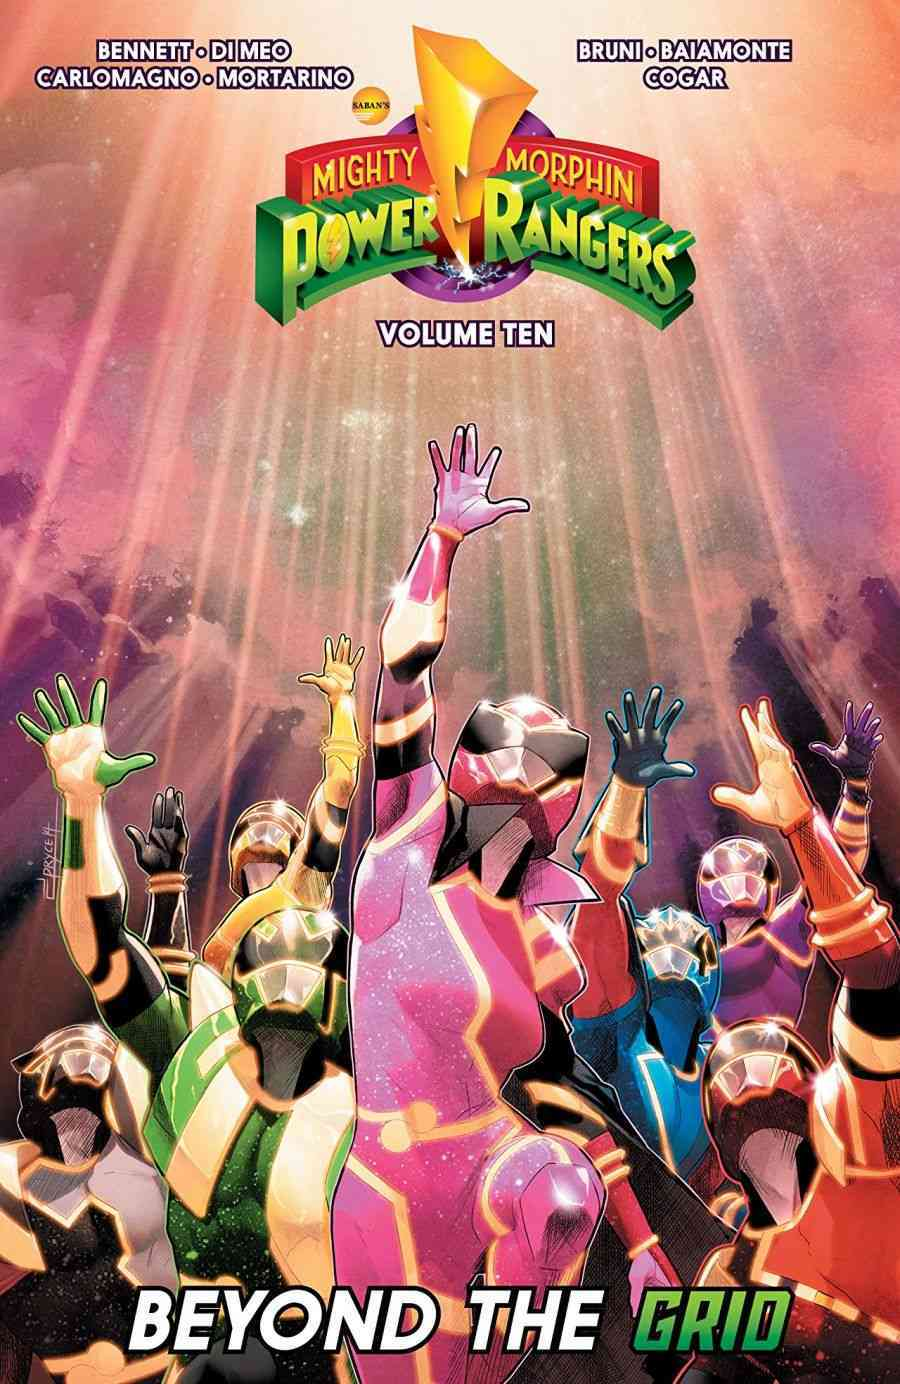 Mighty Morphin Power Rangers Vol. 10 Beyond the Grid